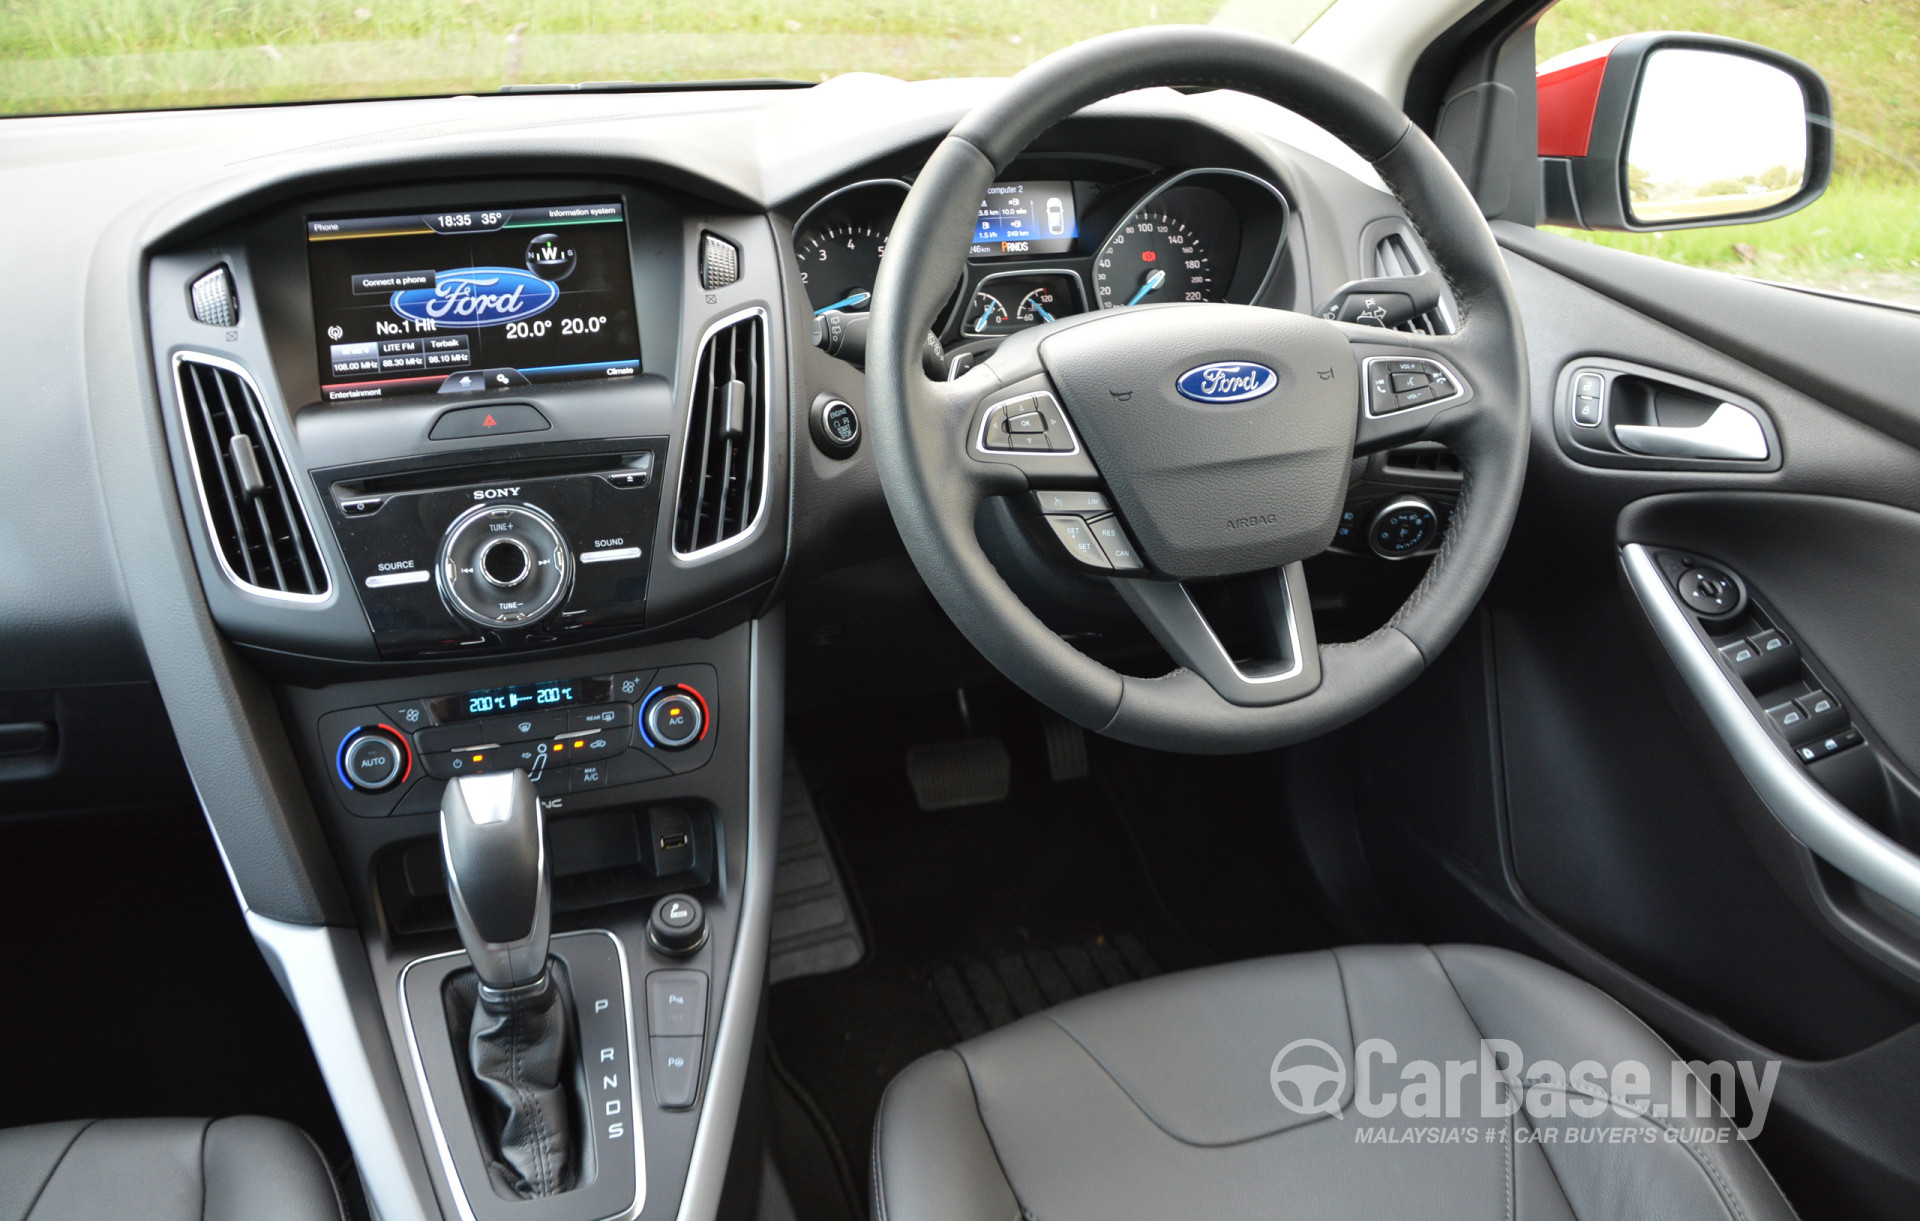 Ford Focus Mk3 C346 Fl 2016 Interior Image 27993 In Malaysia Reviews Specs Prices